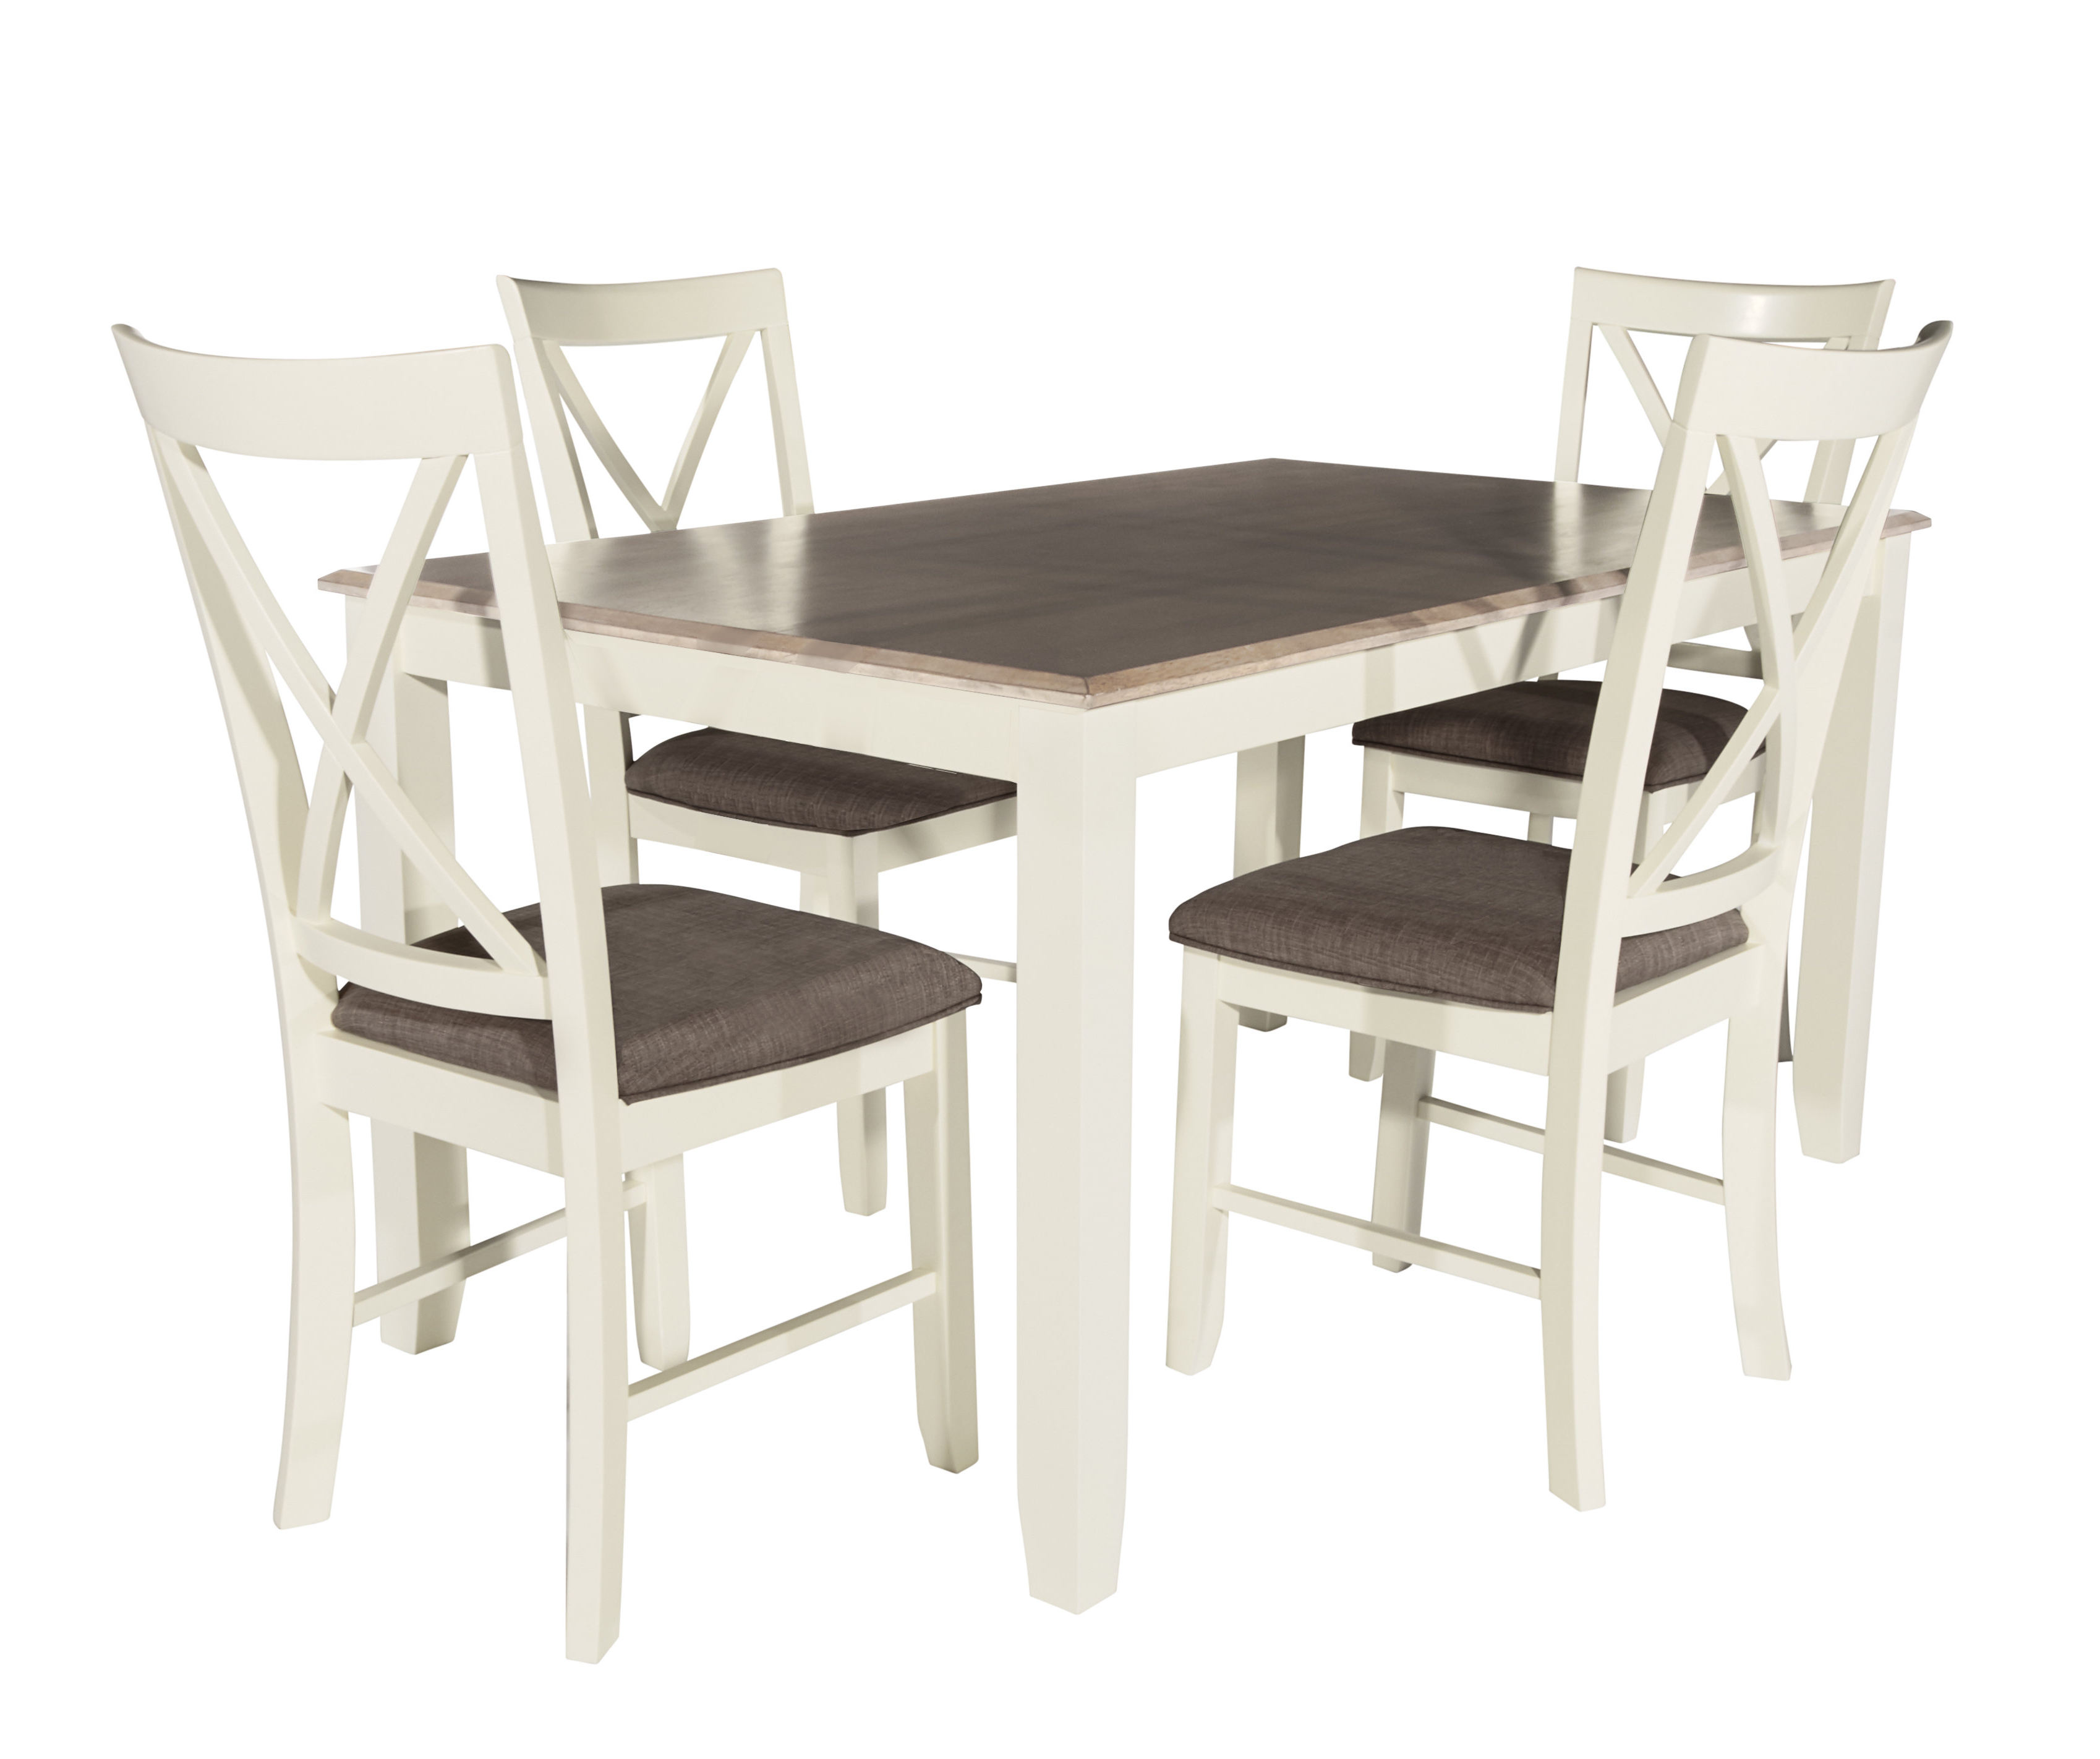 Fashionable Laurel Foundry Modern Farmhouse Amaury 5 Piece Dining Set & Reviews Throughout 5 Piece Dining Sets (View 7 of 25)